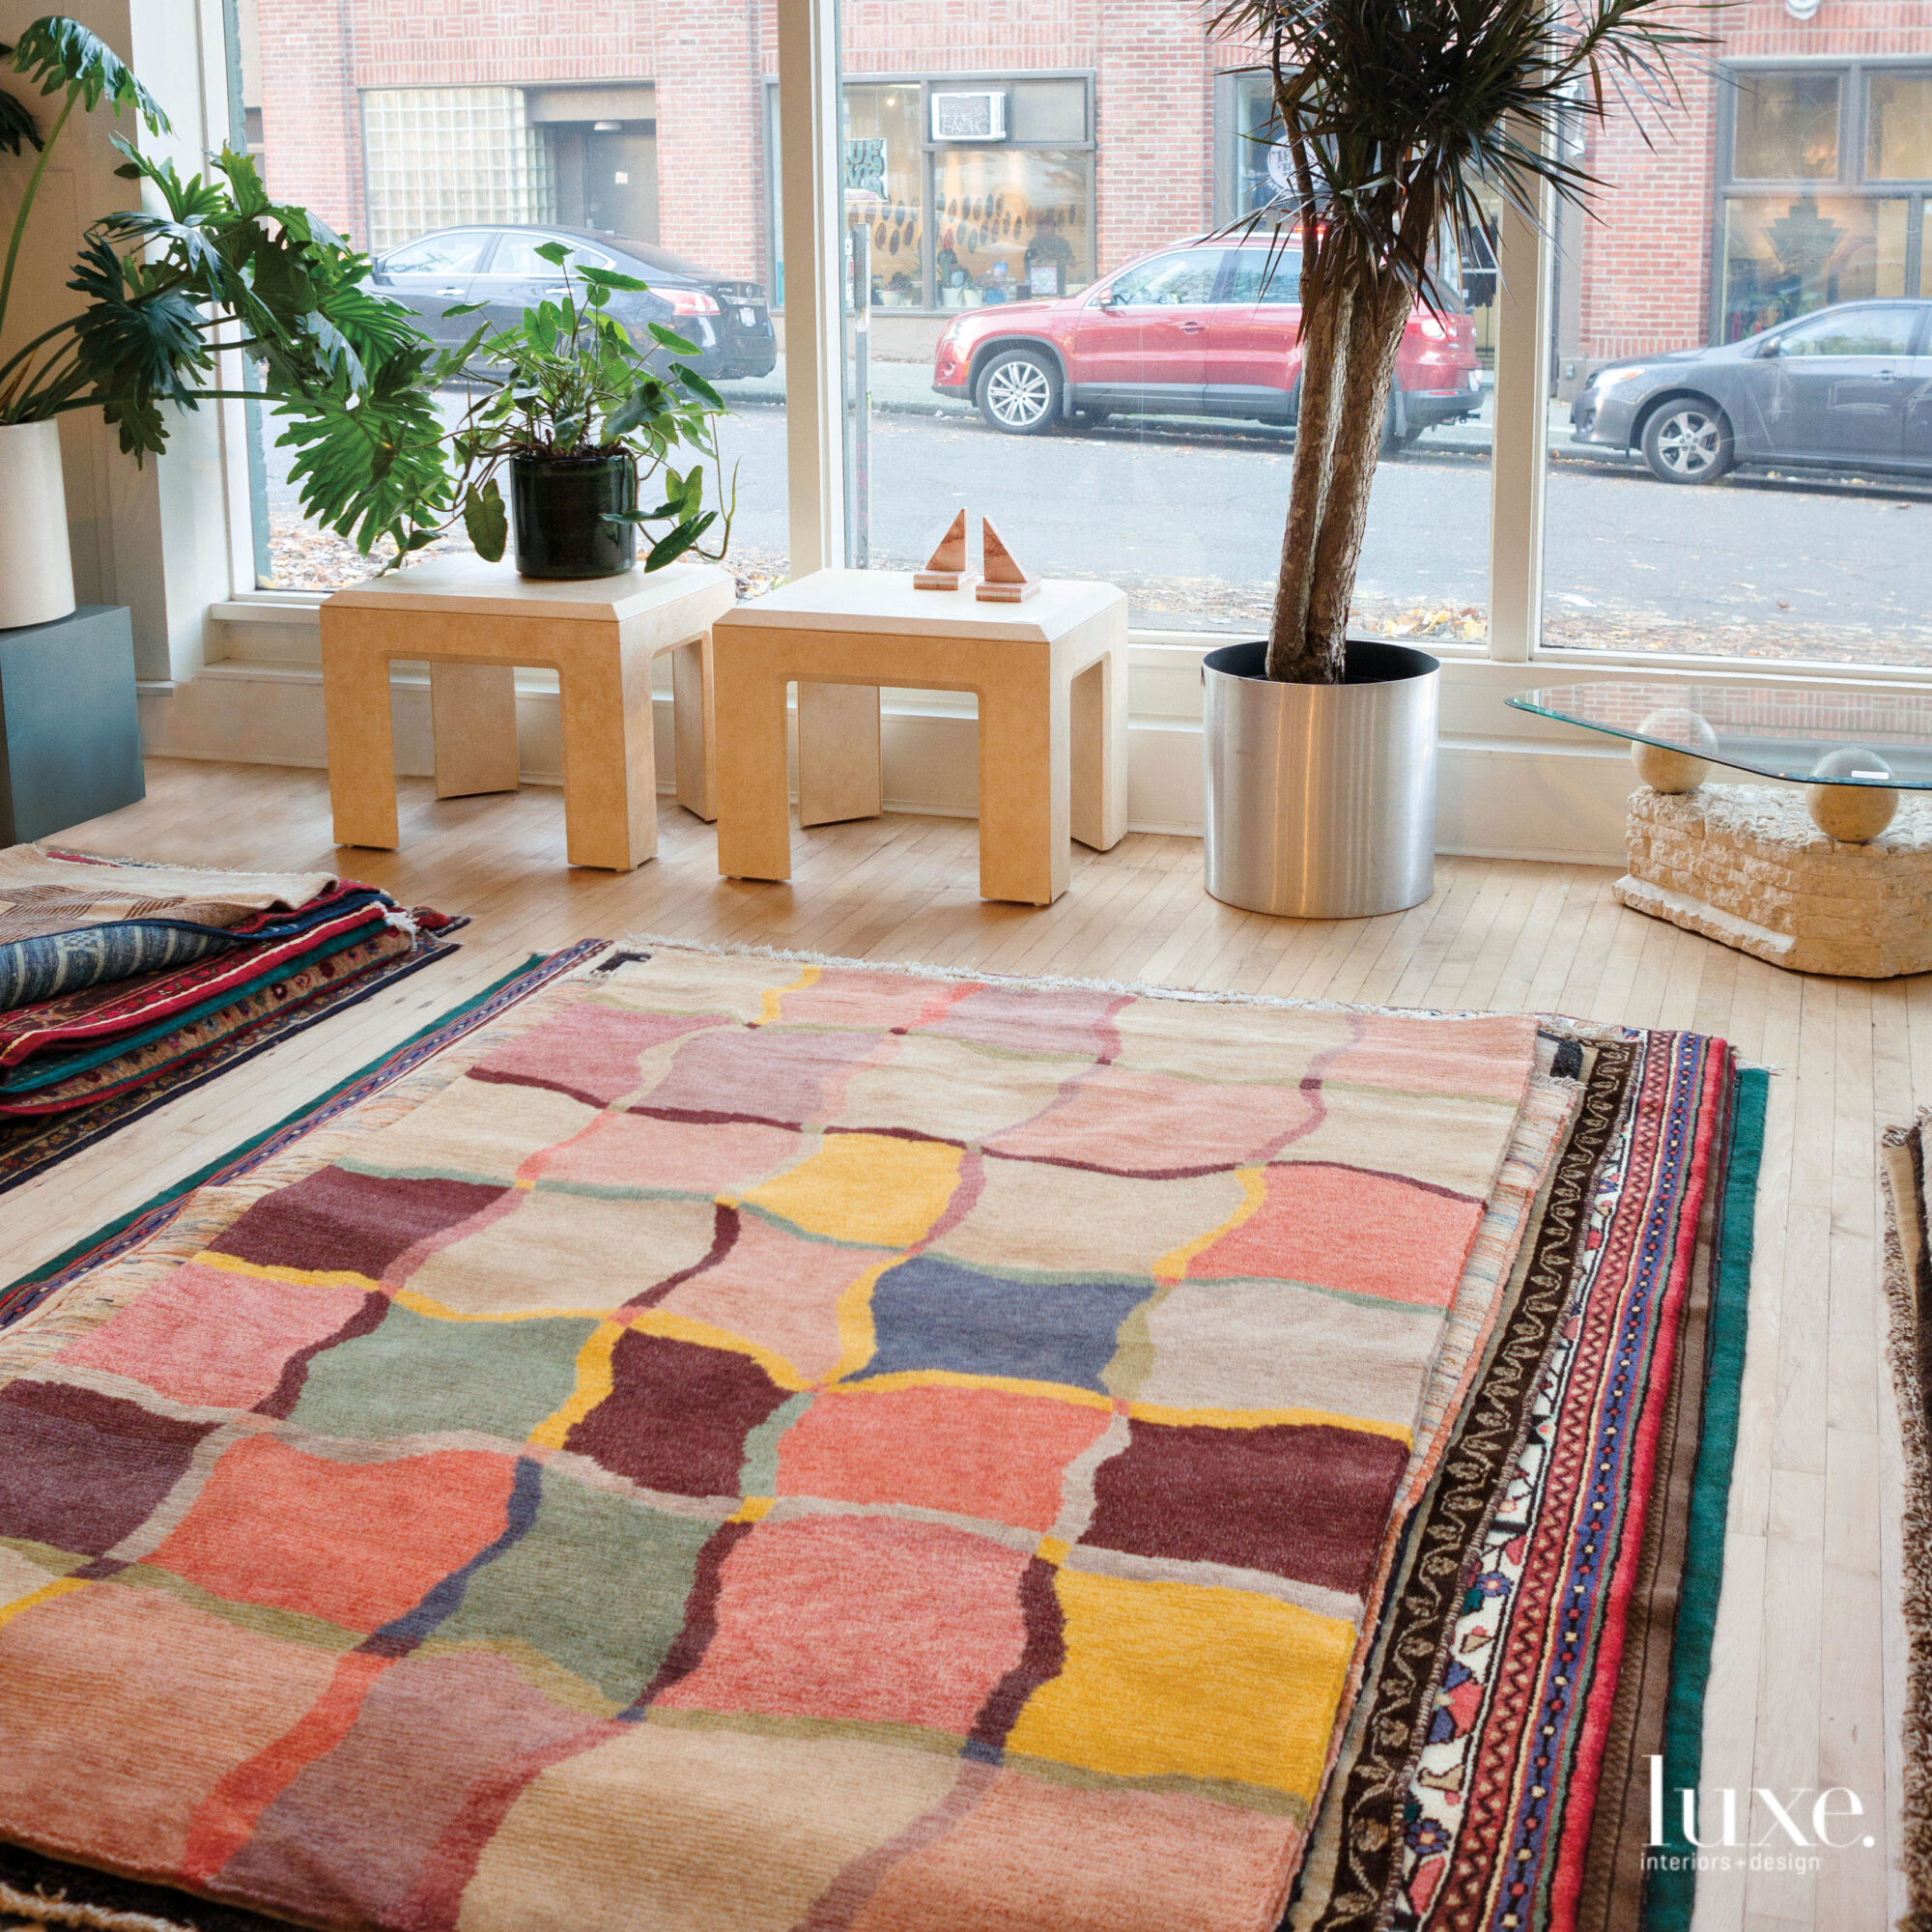 A colorful patterned rug sits center stage in this shop